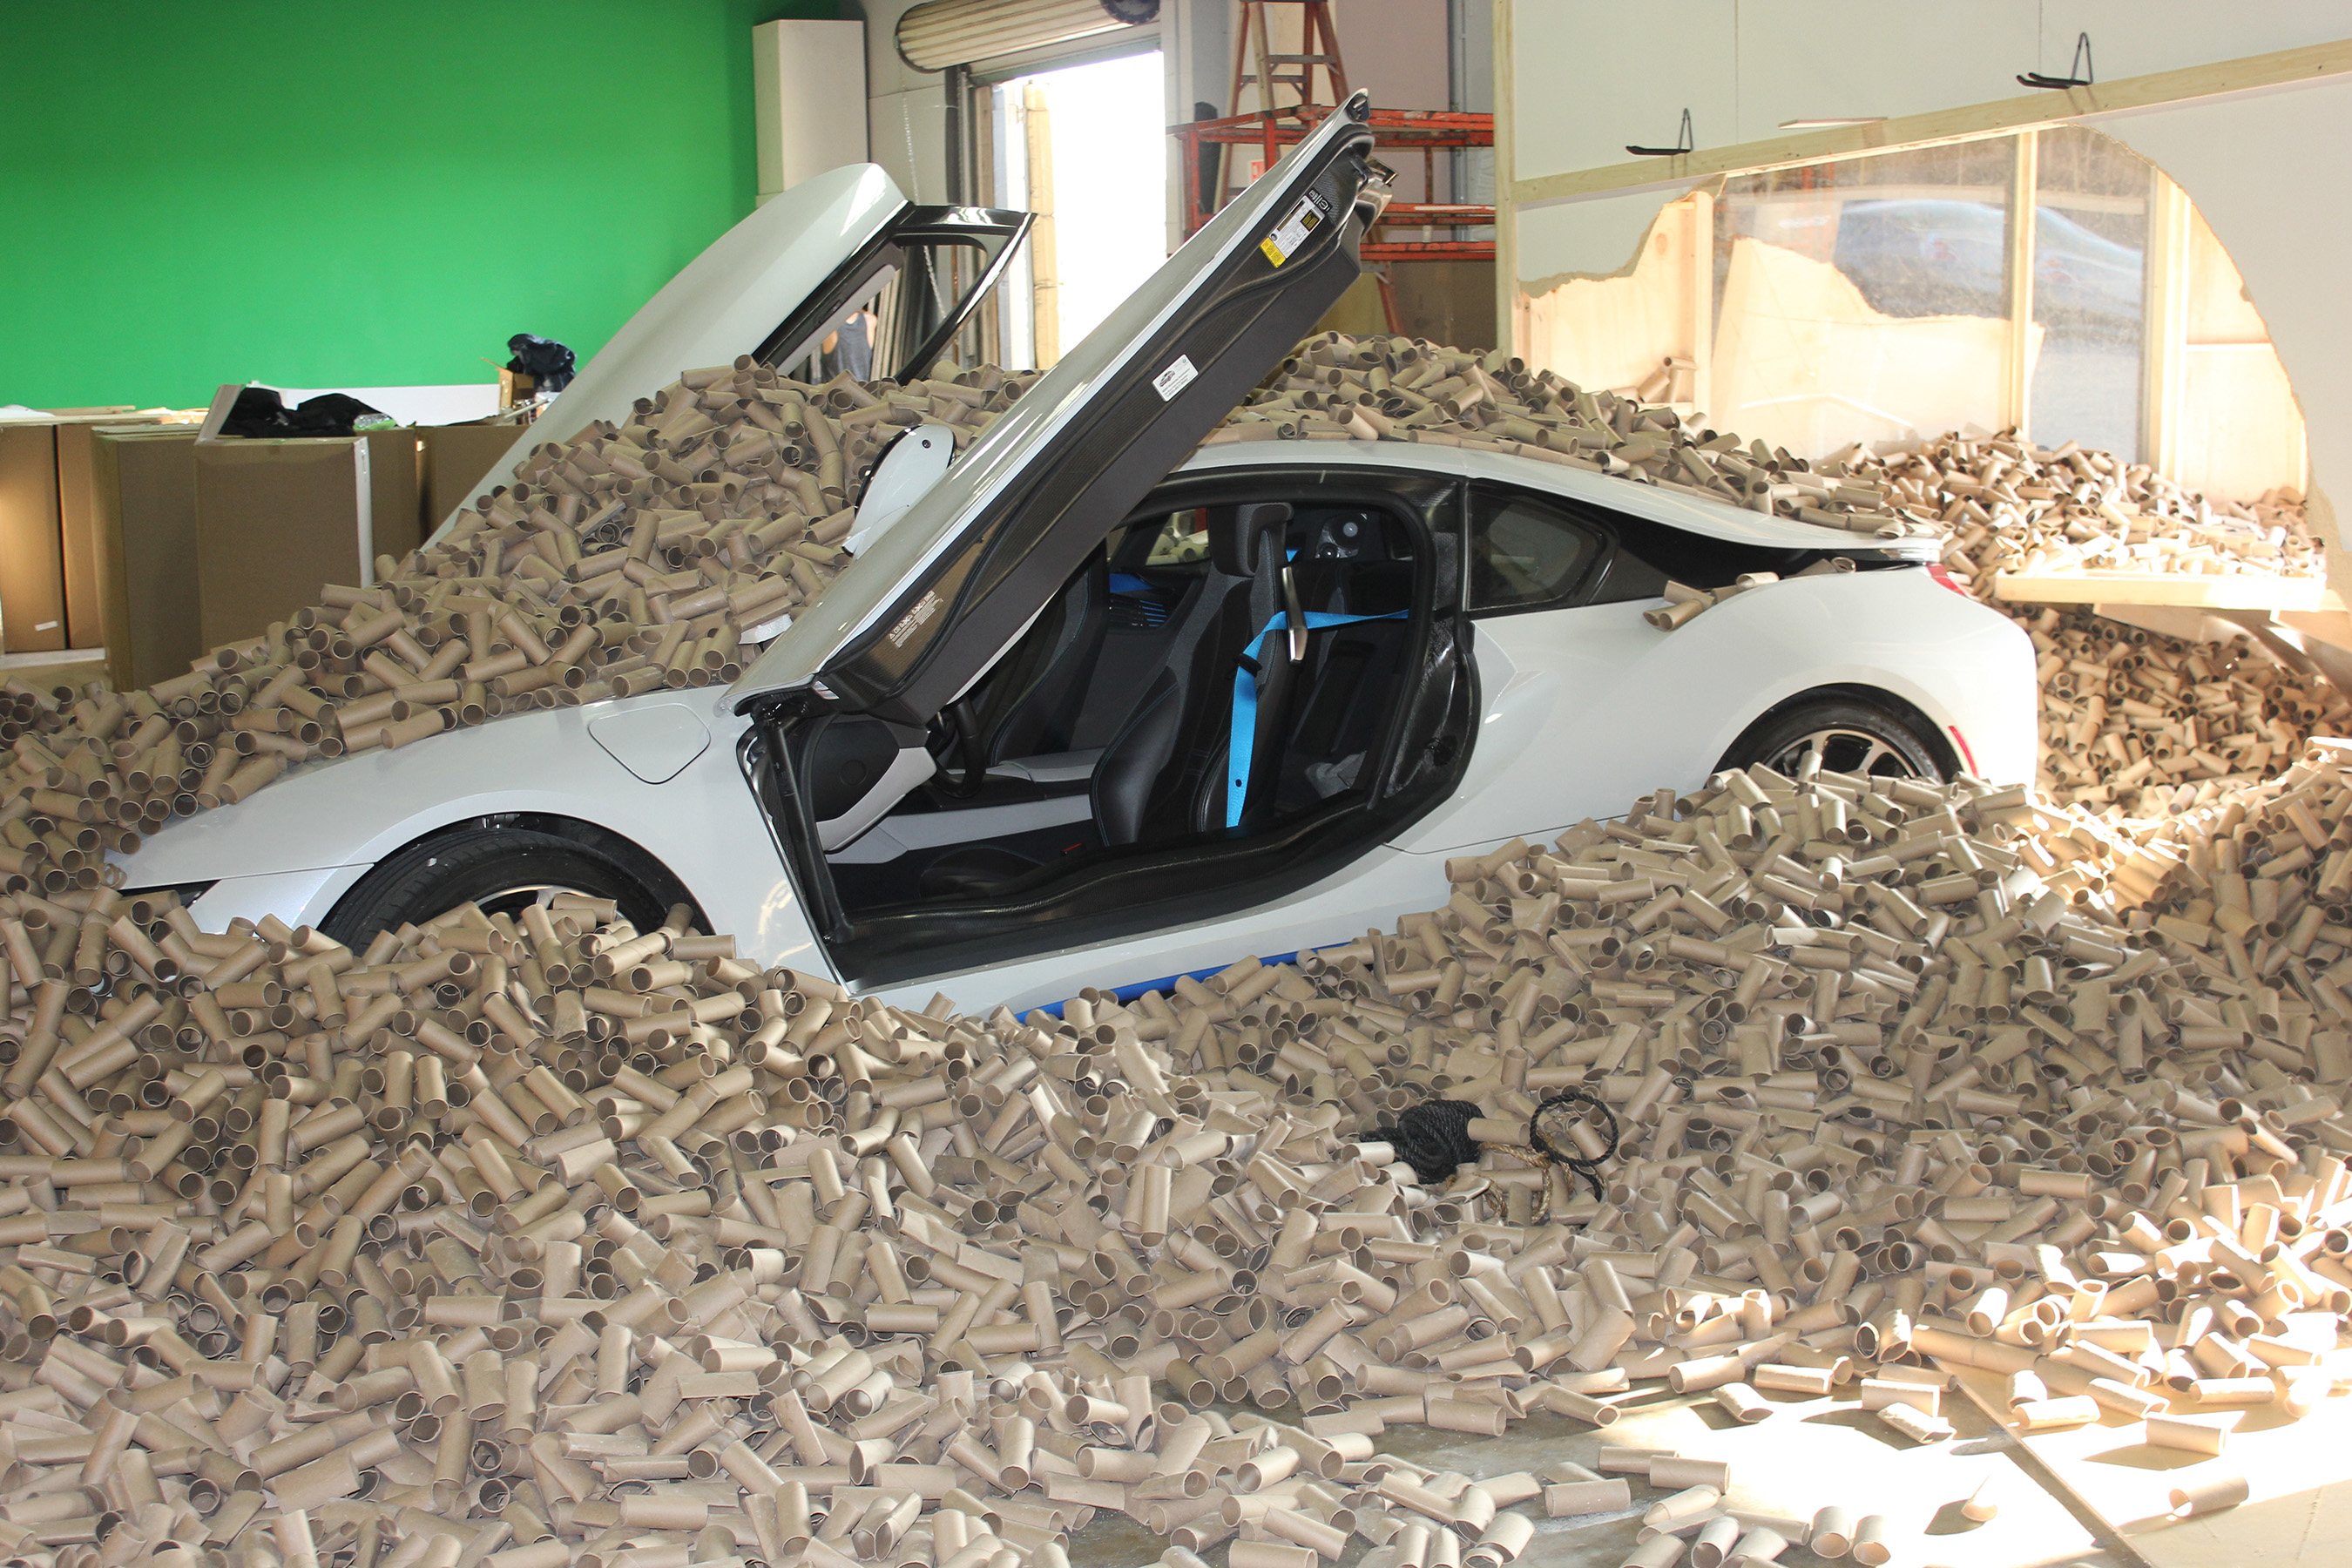 In this stunt devised by Scott Tube Free and YouTube stuntman Roman Atwood, this car crashes through 66,000 toilet paper tubes – the amount the U.S. uses in just over two minutes.